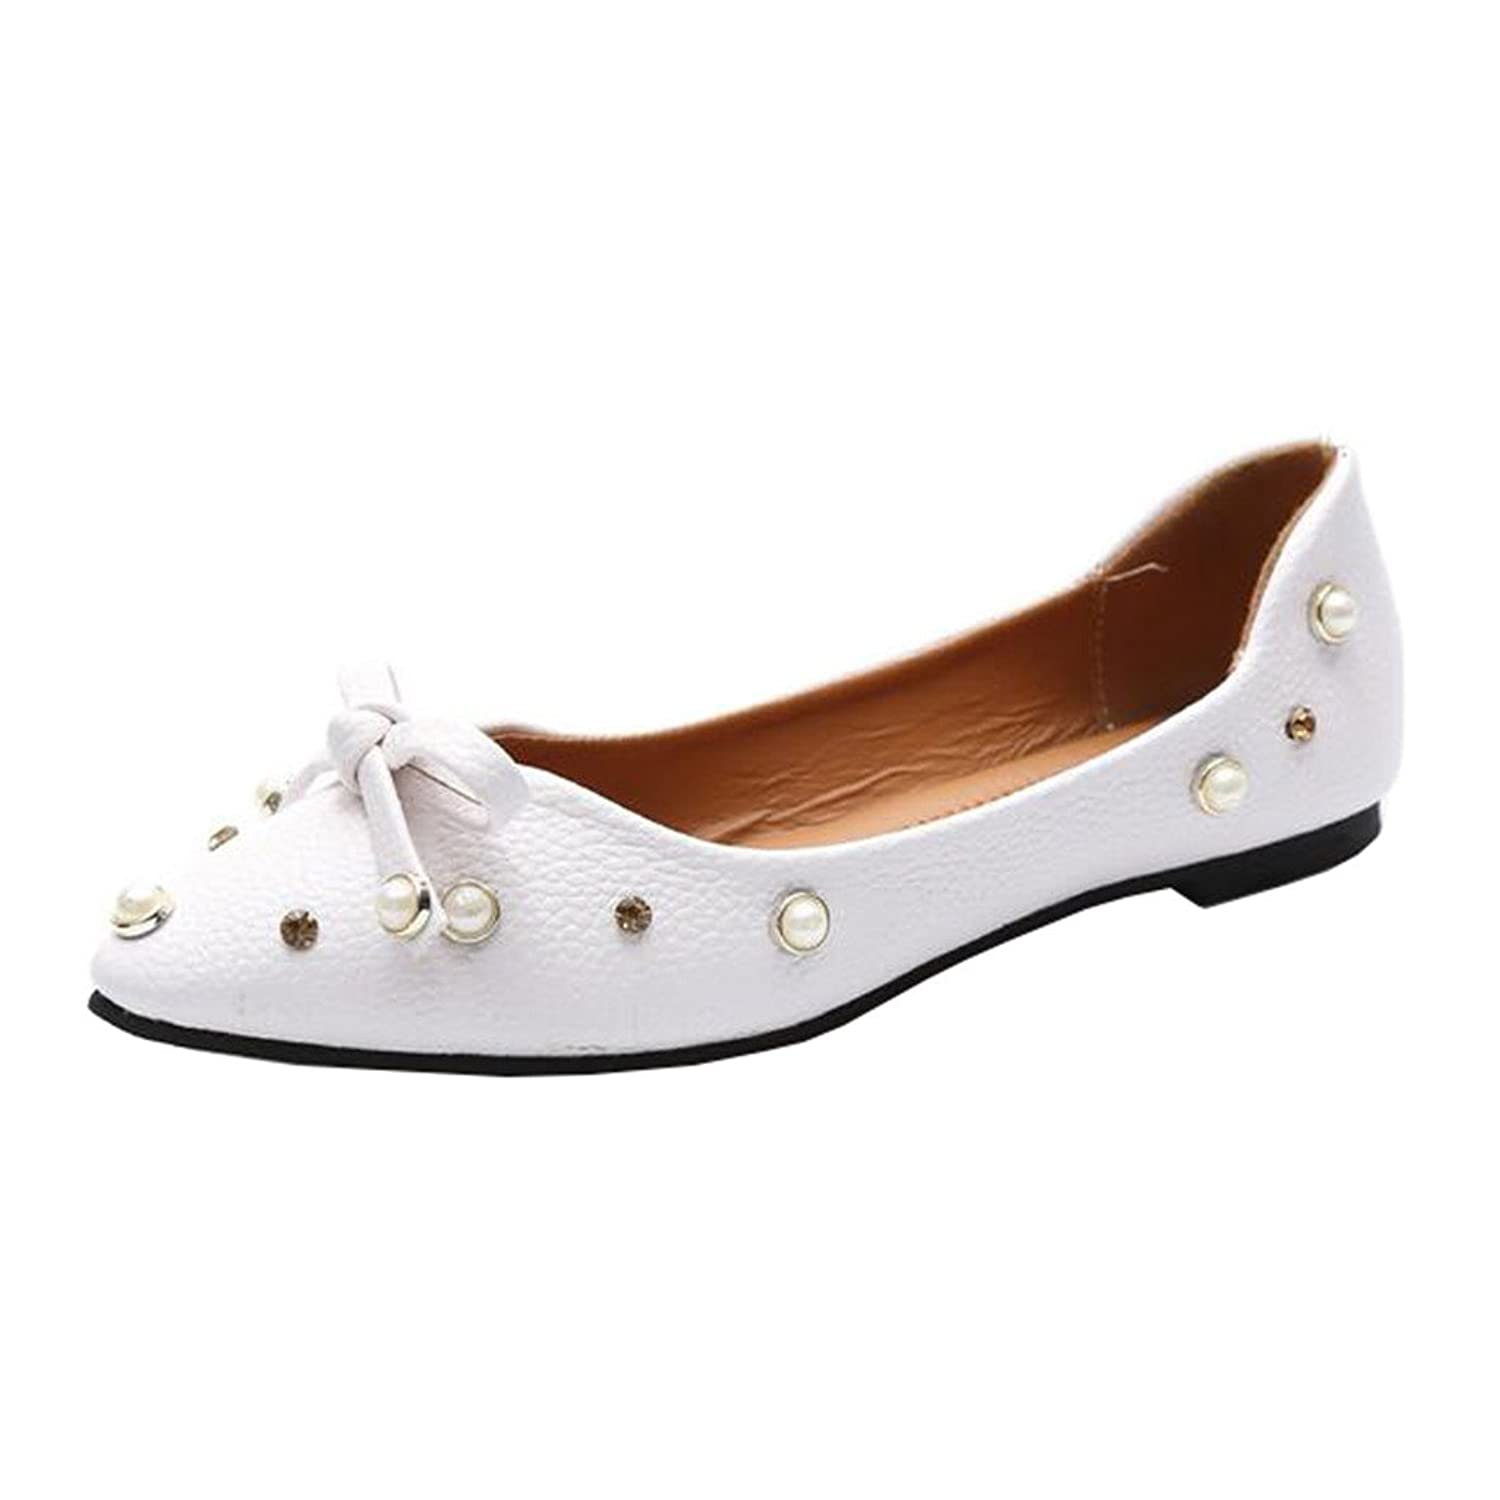 new Binying Women's Low-Top Bowknot Beaded Flat Slip-on Ballet Flats B(M) US 8 White